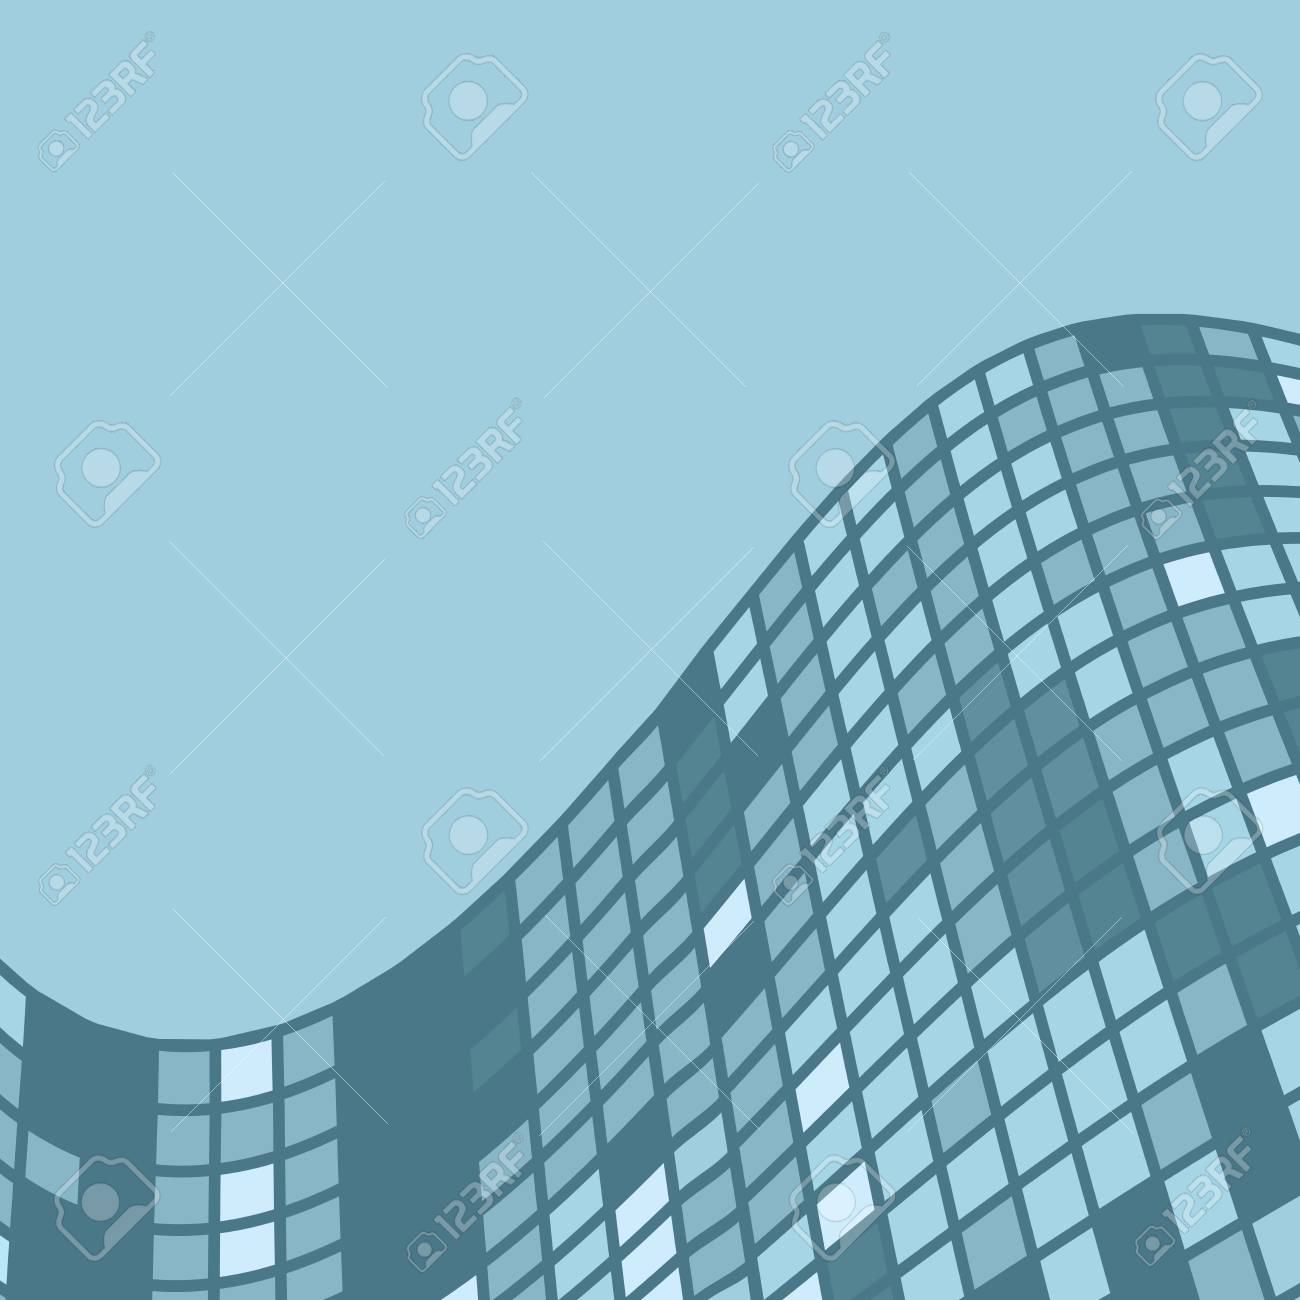 e4b751547a9 Background with abstract glass building in modern style in an unusual  perspective. Stock Vector -